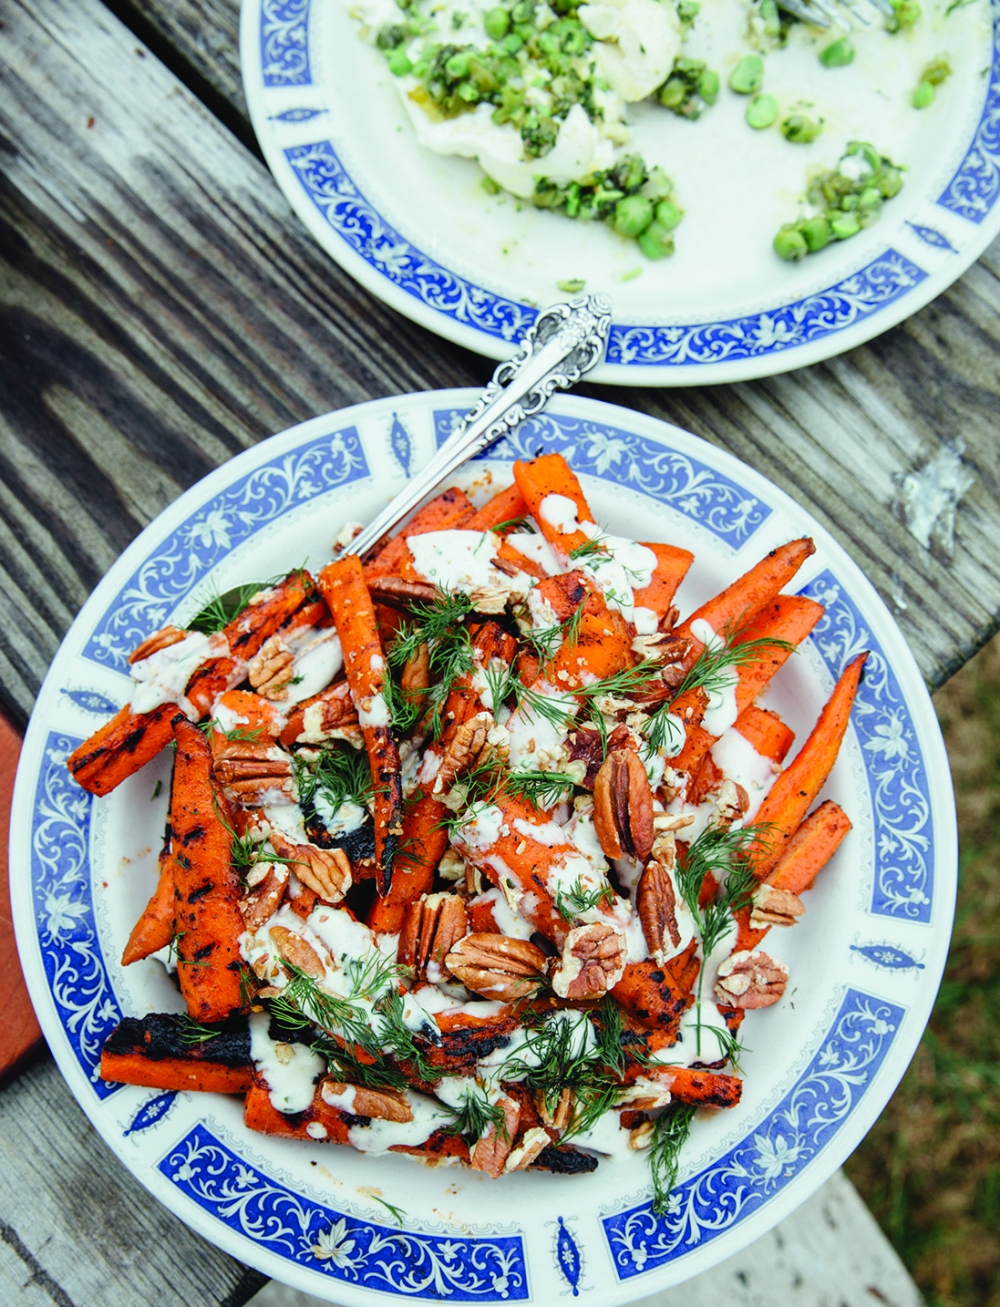 barbecued-carrots.jpg